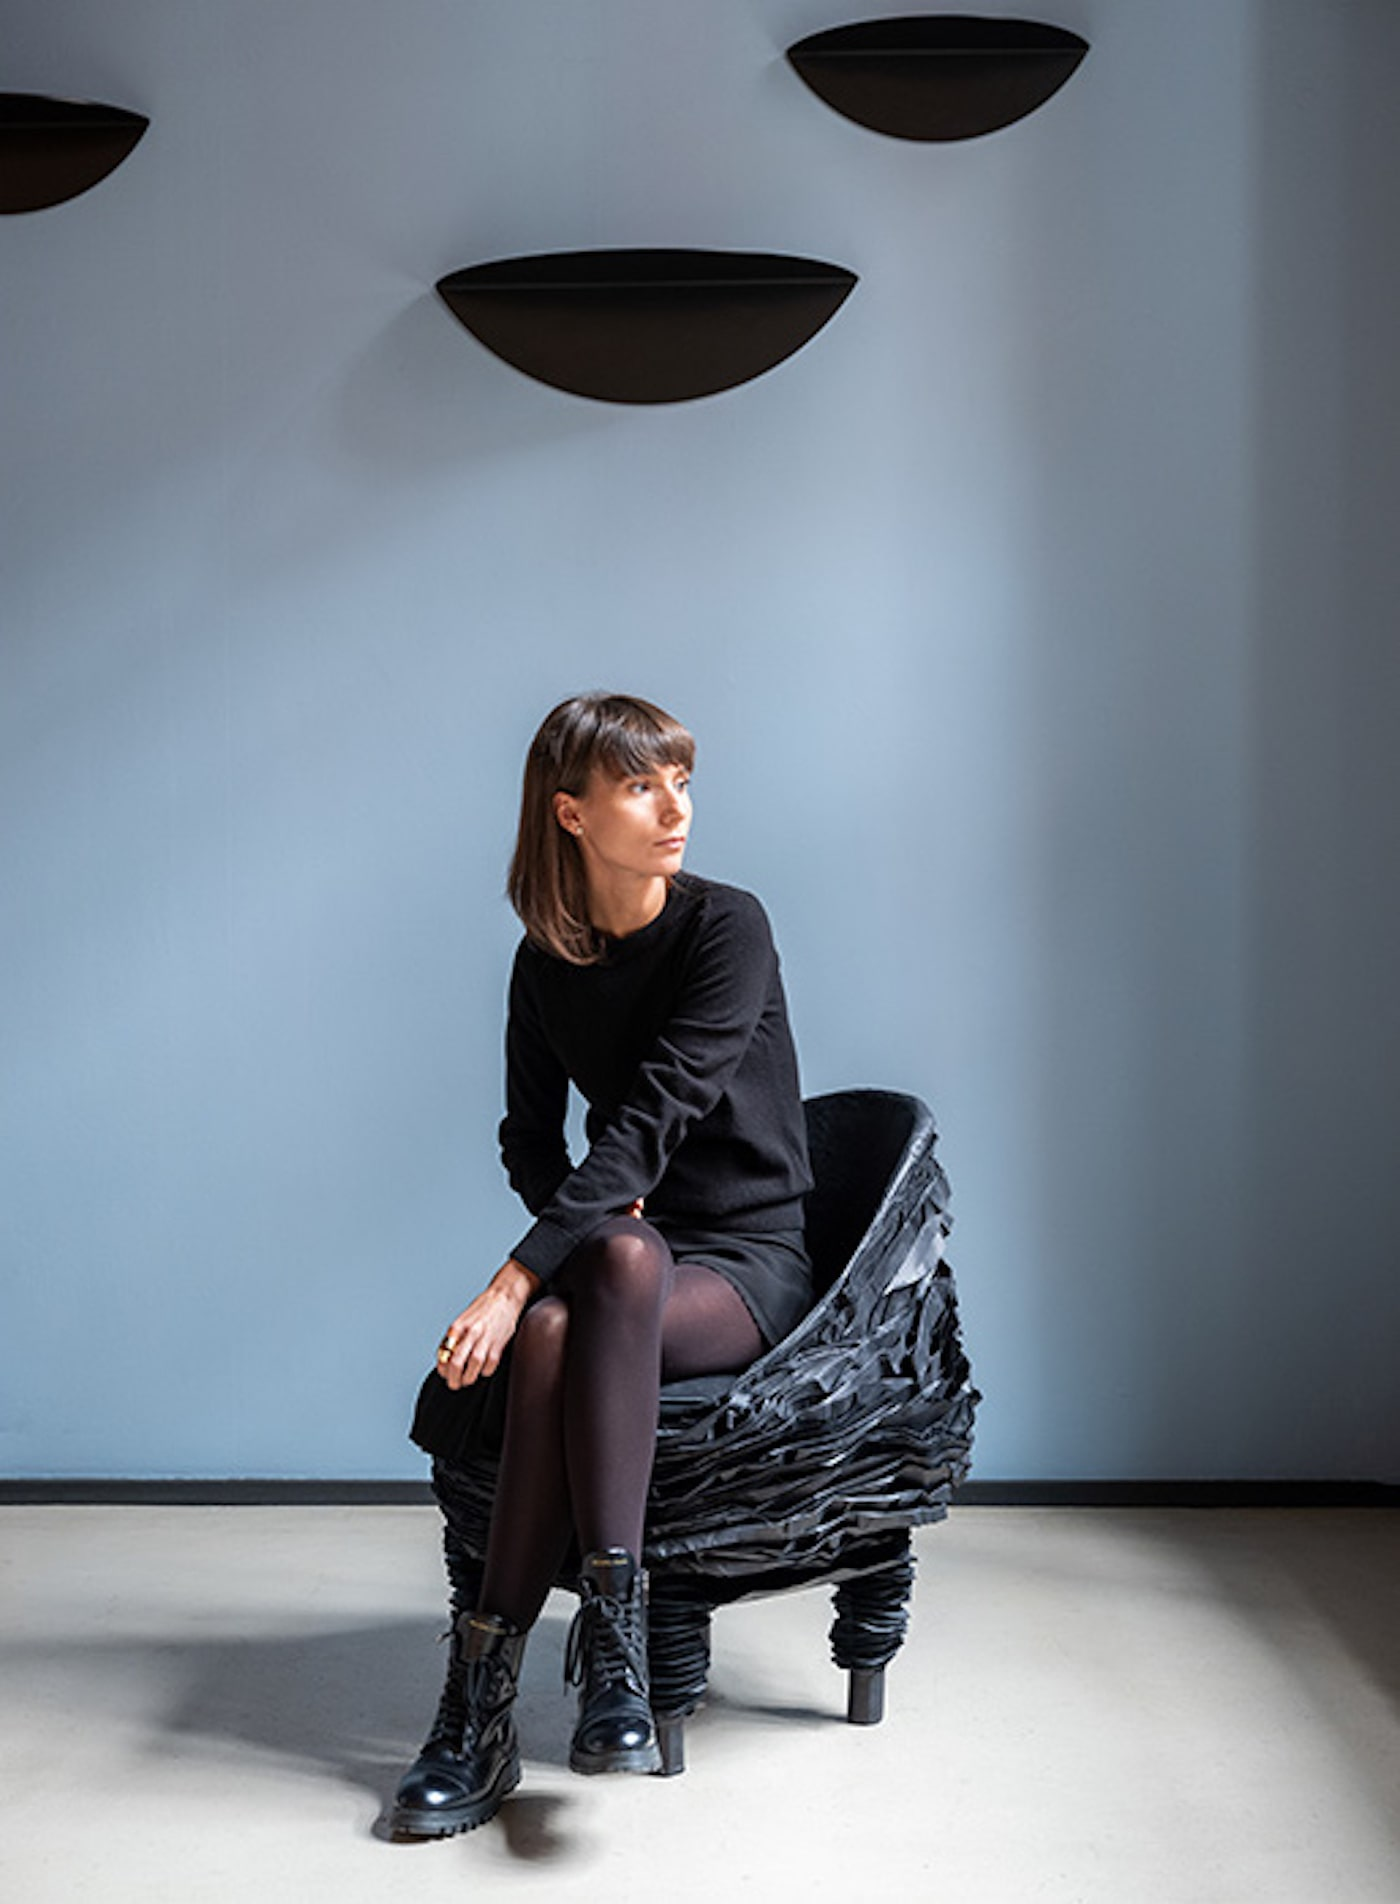 Woman sitting on black chair made from recycled cardboard